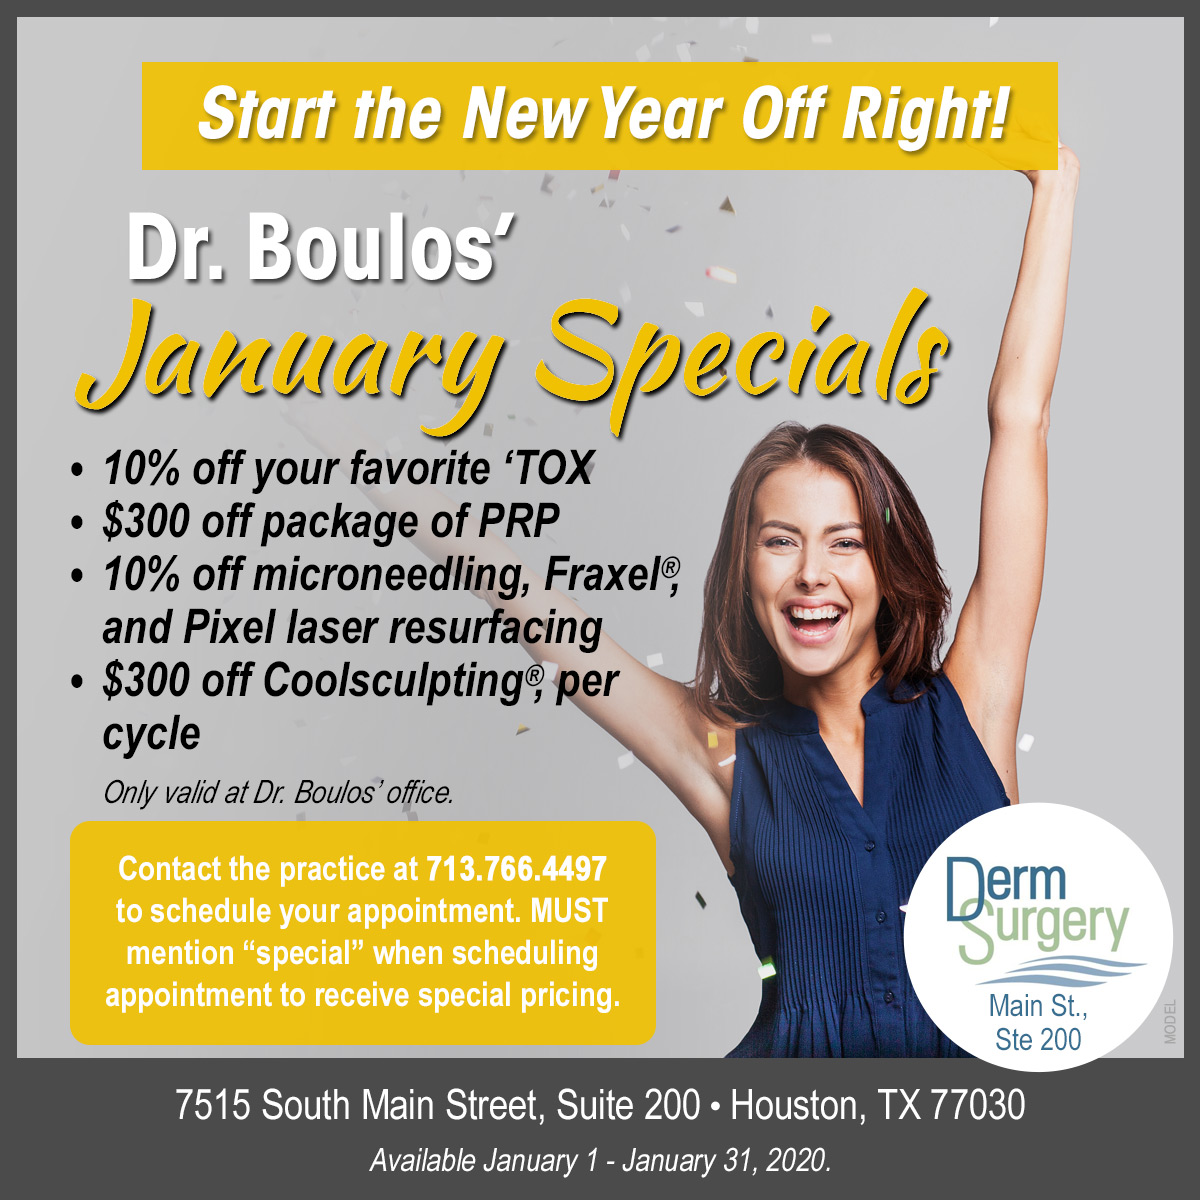 Dr. Boulos's January Special